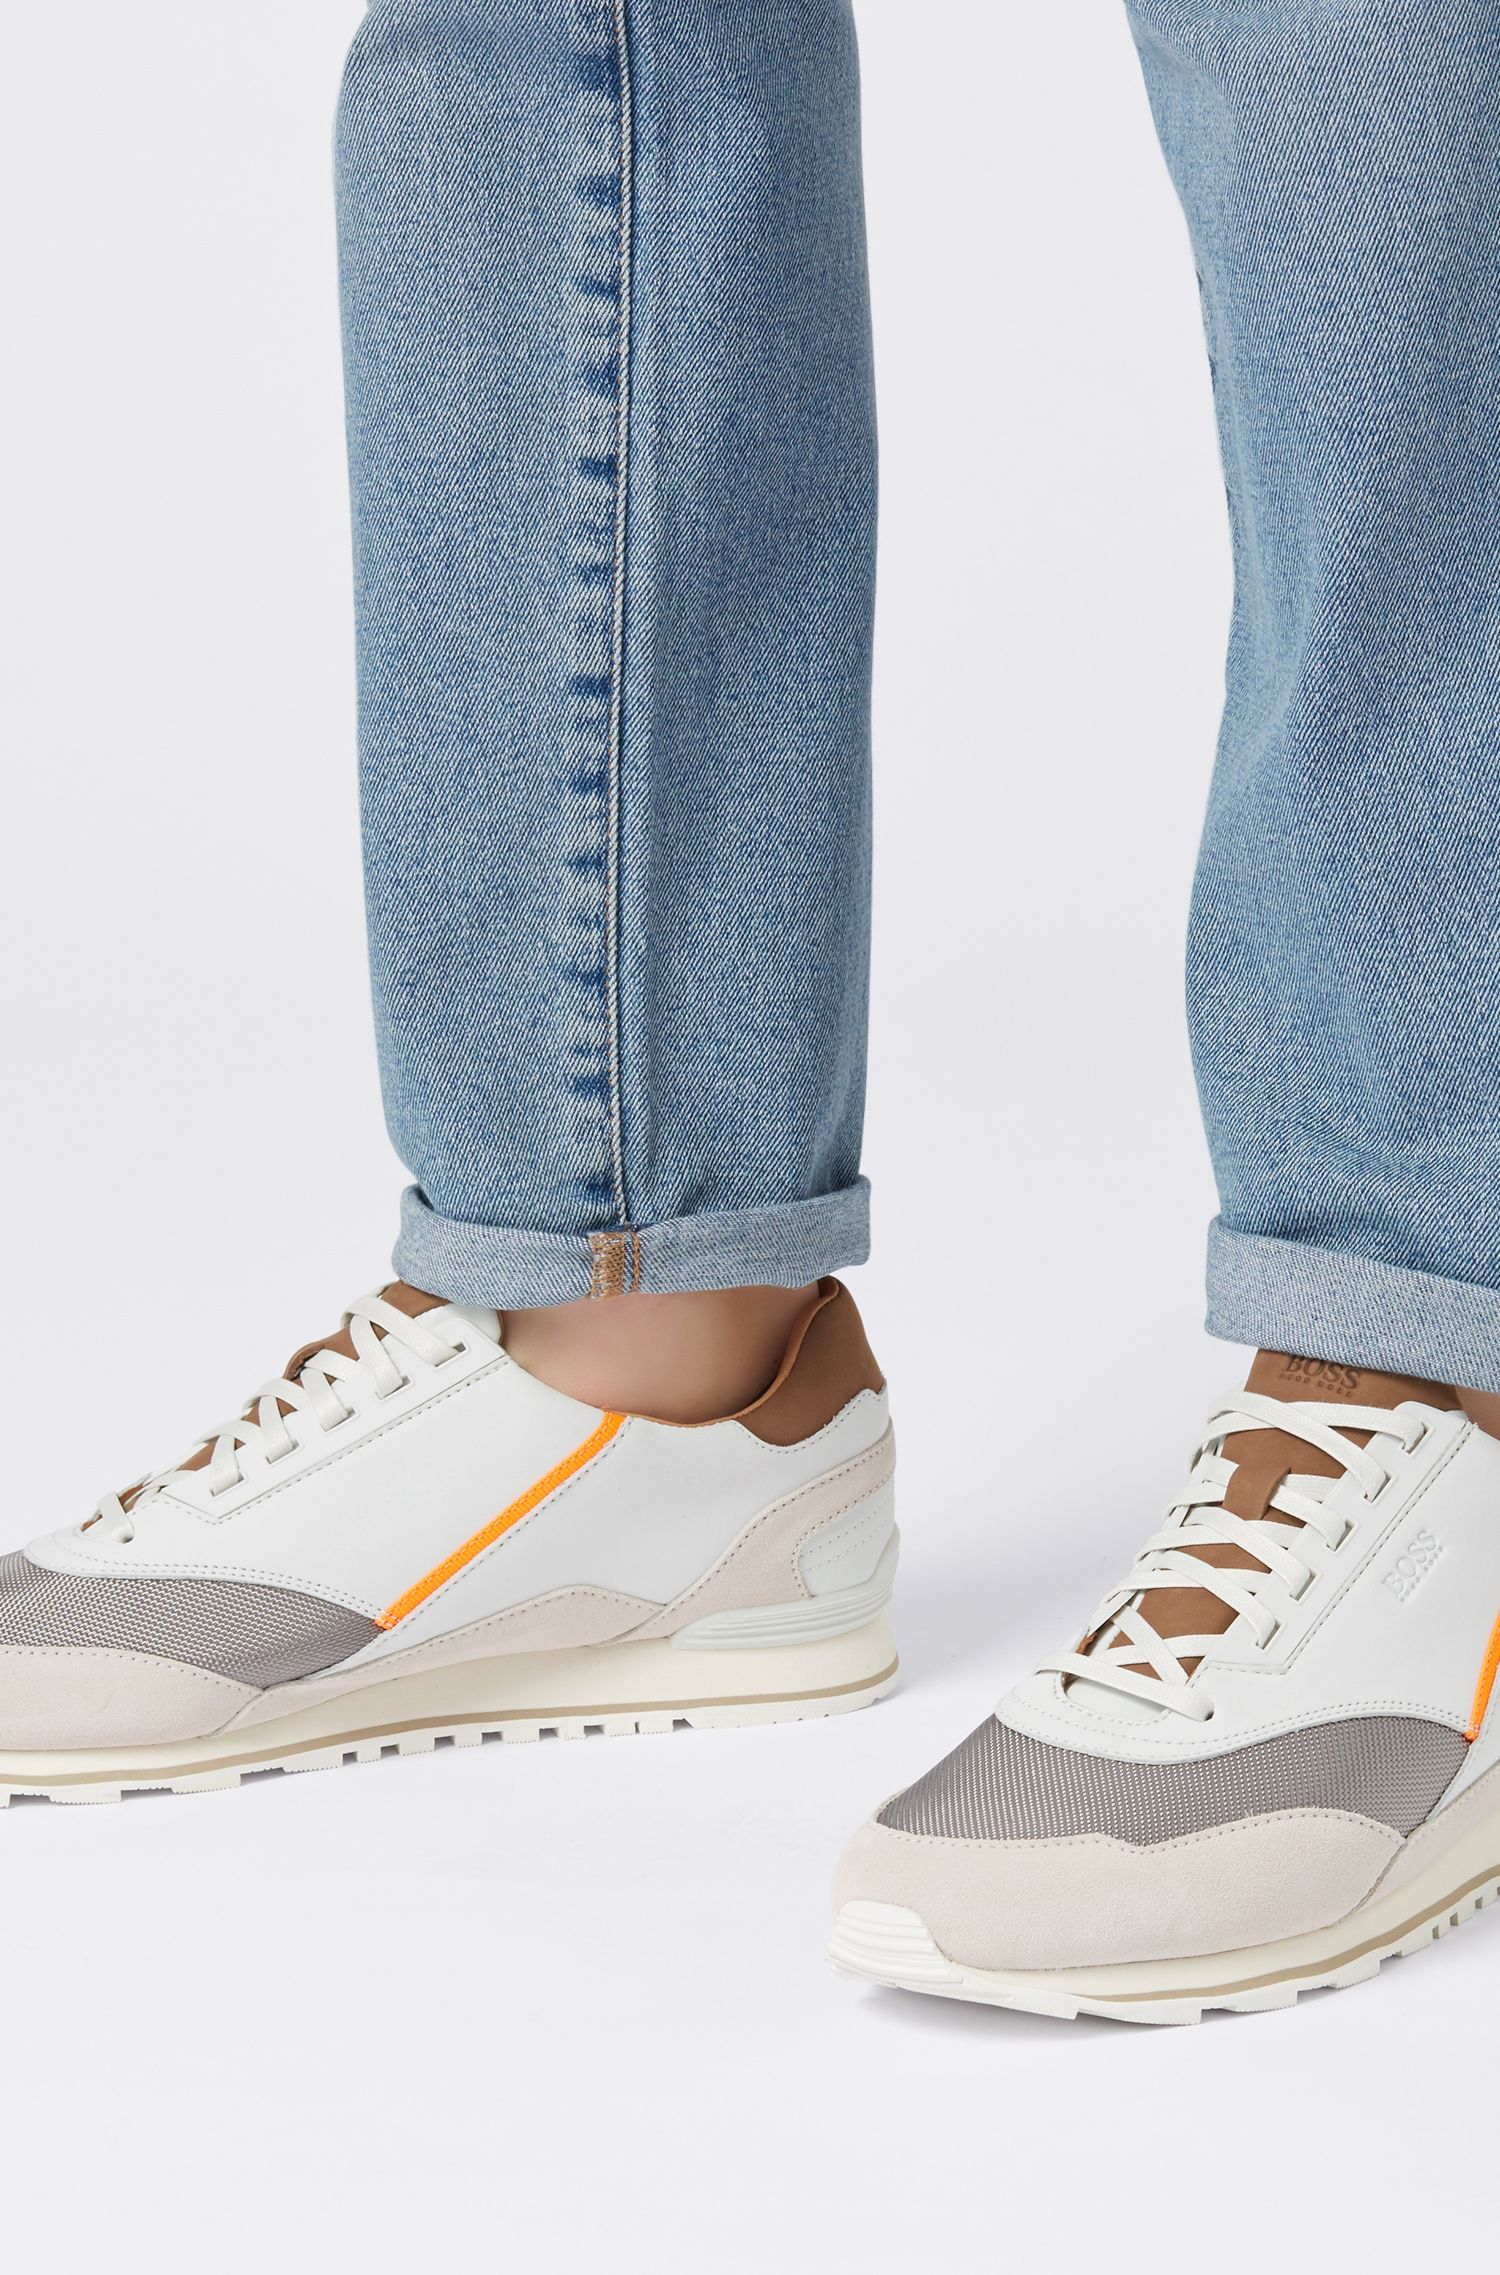 Low-top trainers in suede, leather and technical fabric, White